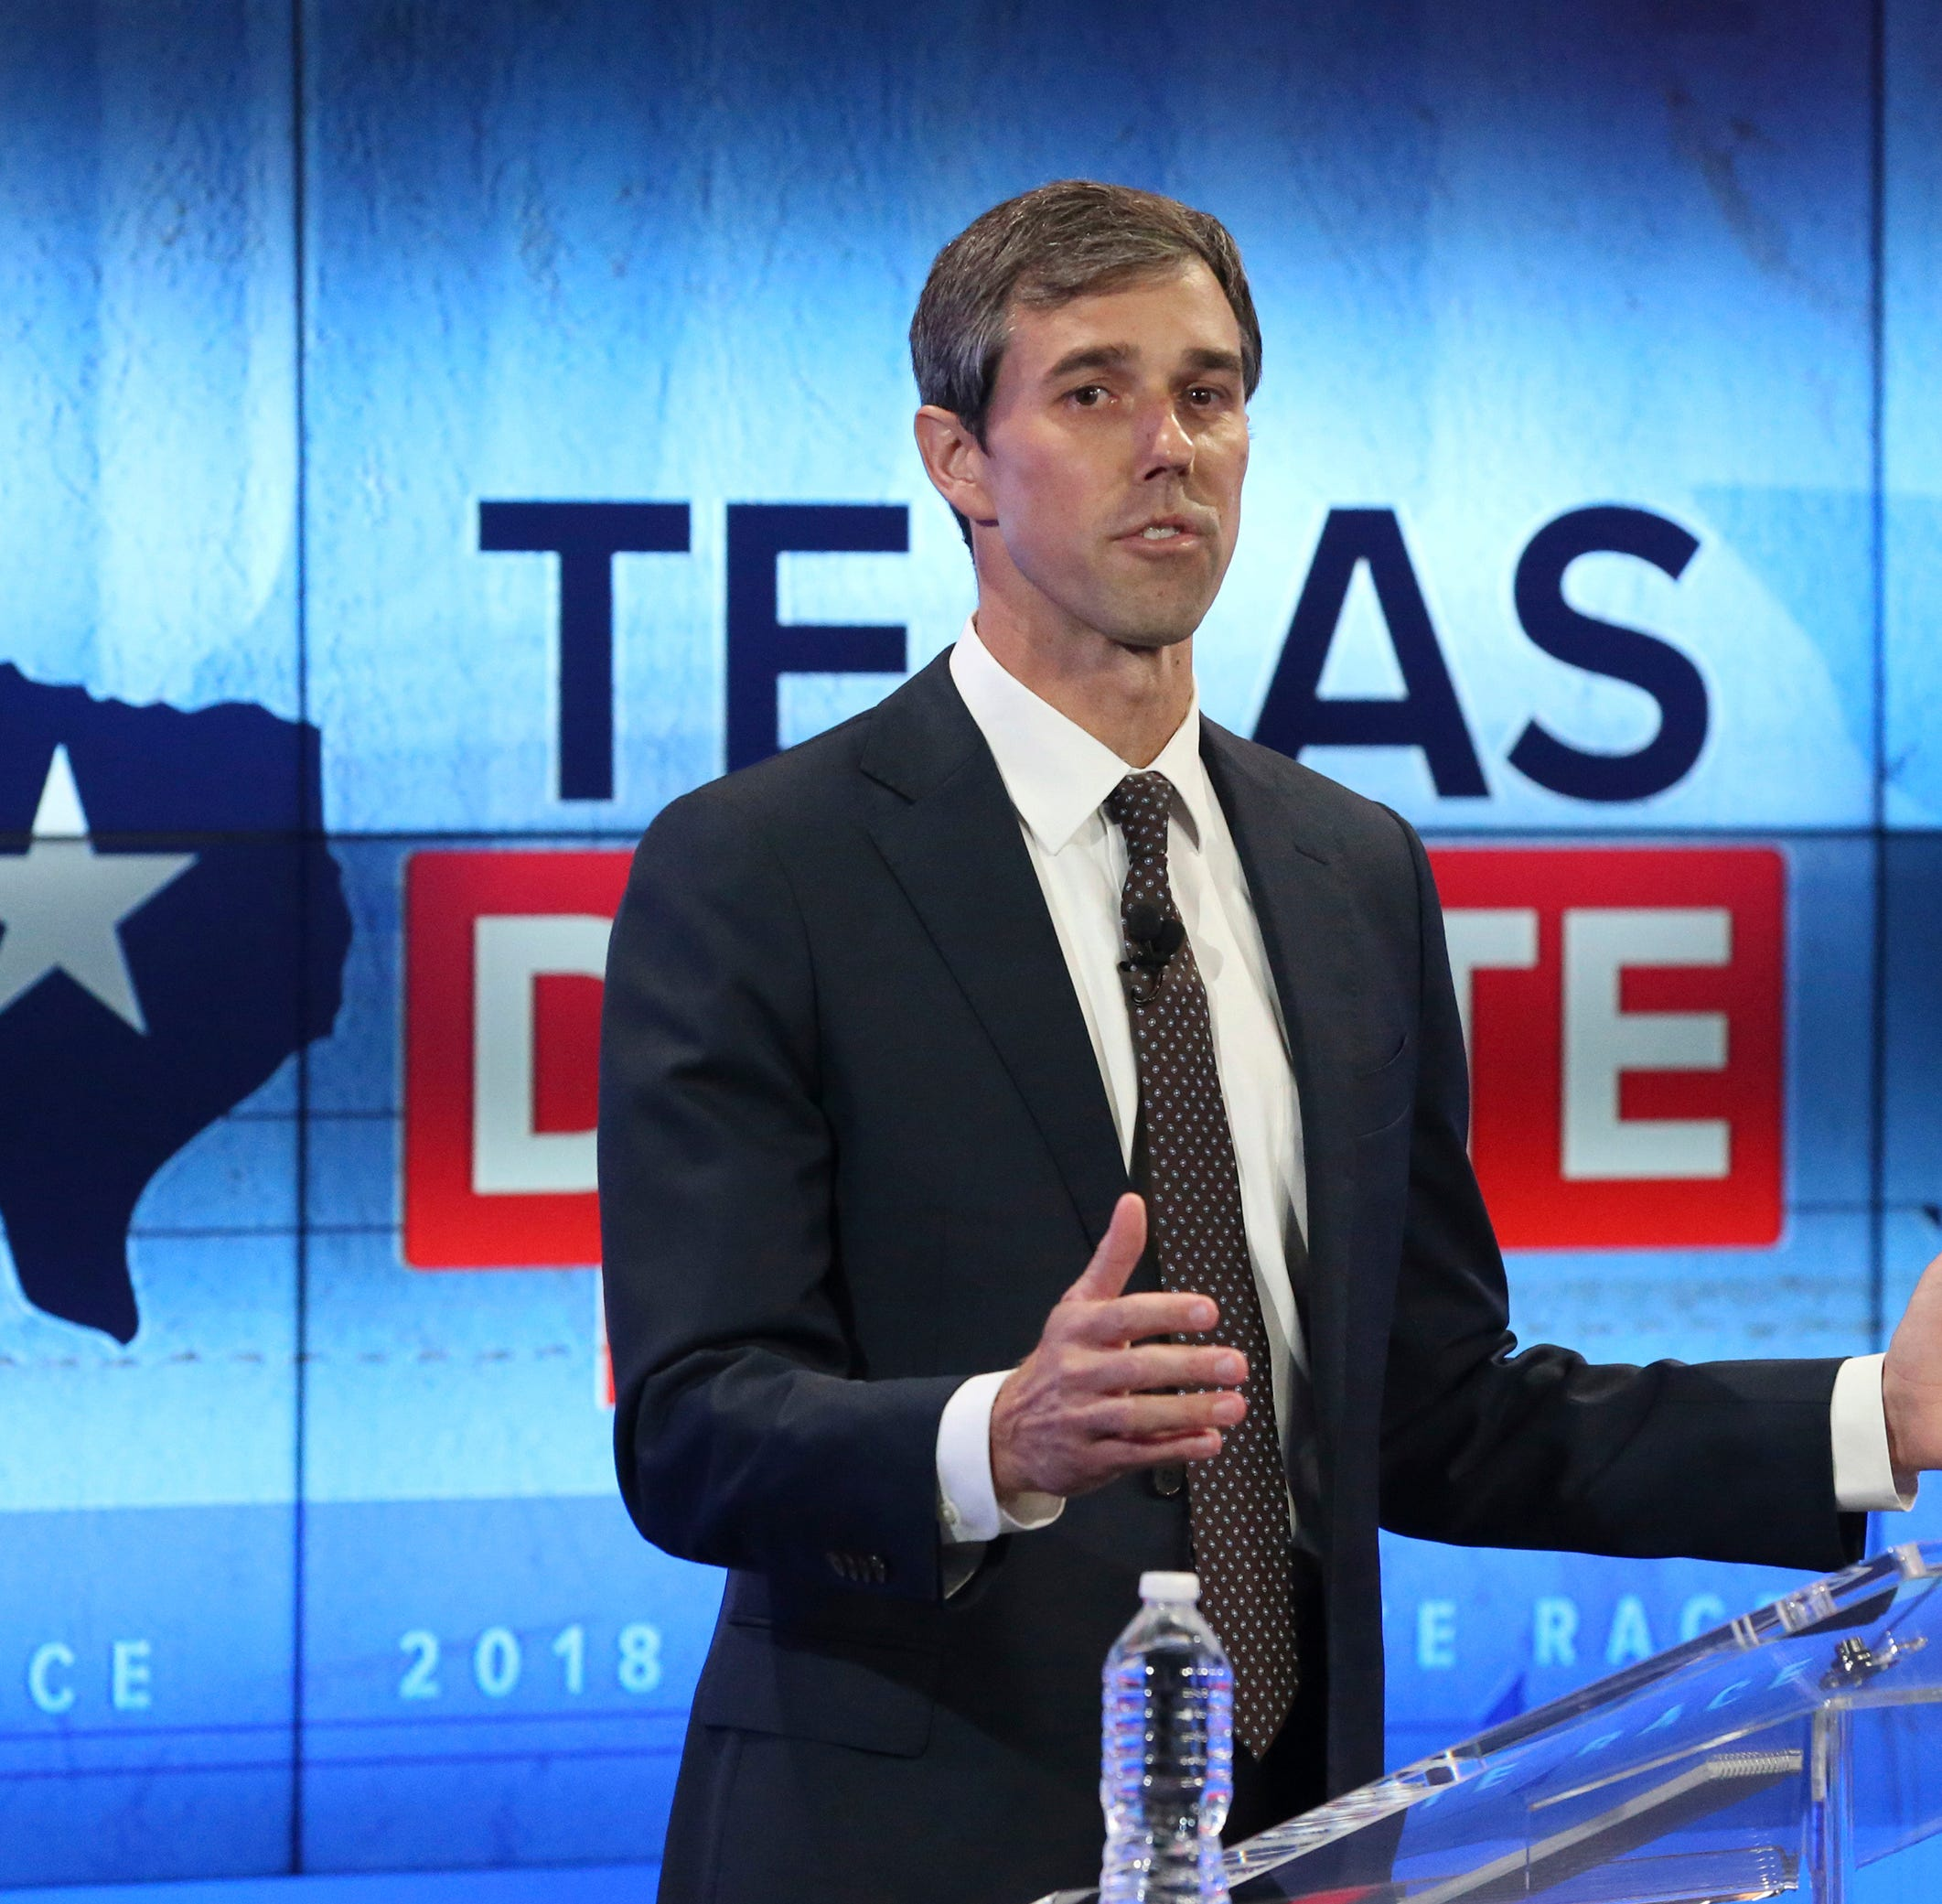 Trump, ICE, education, and more: Where Beto O'Rourke stands on key issues